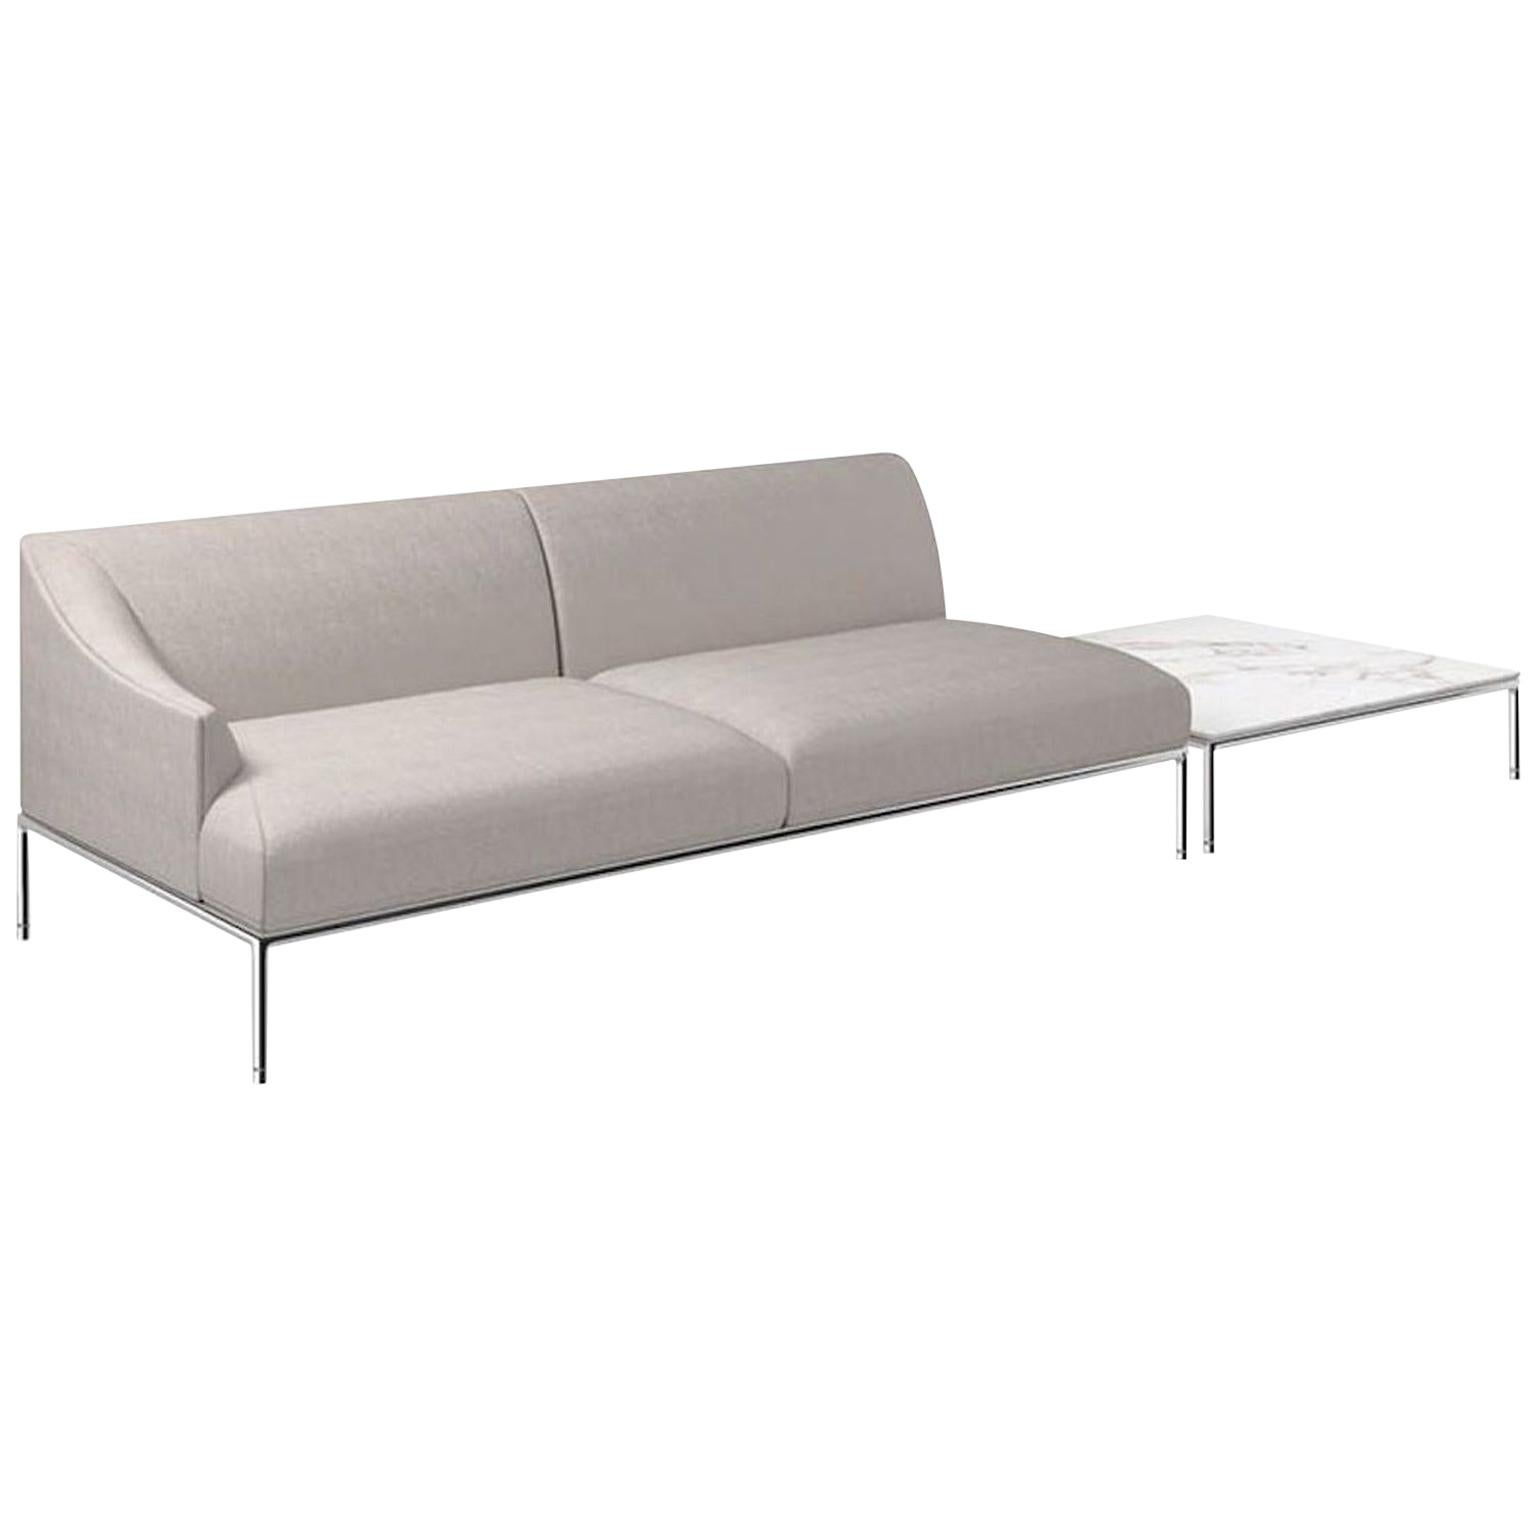 Cappellini High Time Two-Seat Sofa in Cream Hero Fabric by Christophe Pillet